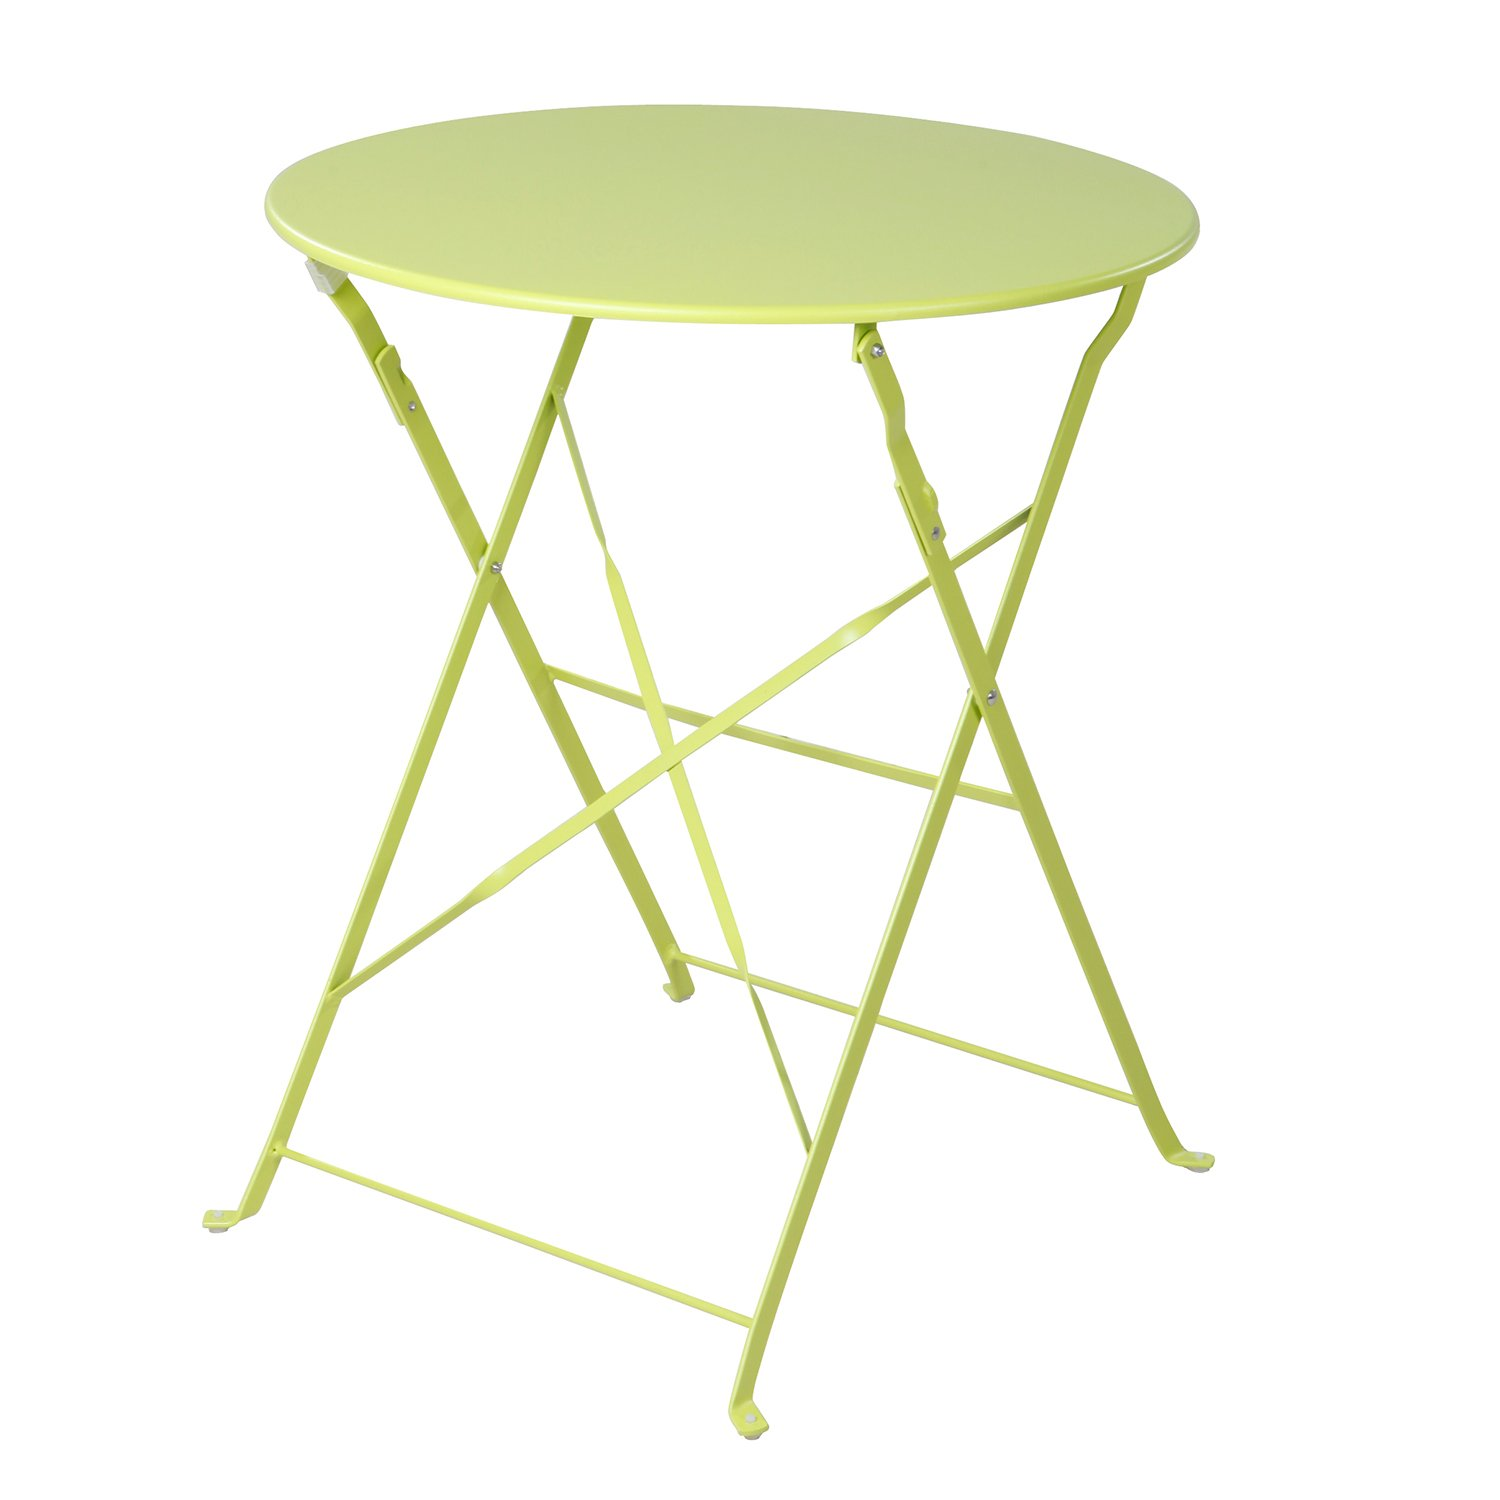 Grand patio 3-Pack Sling Glider Folding Steel 2 Chairs Round Table Indoor Corner Sets,Vivid Green by Grand patio (Image #8)